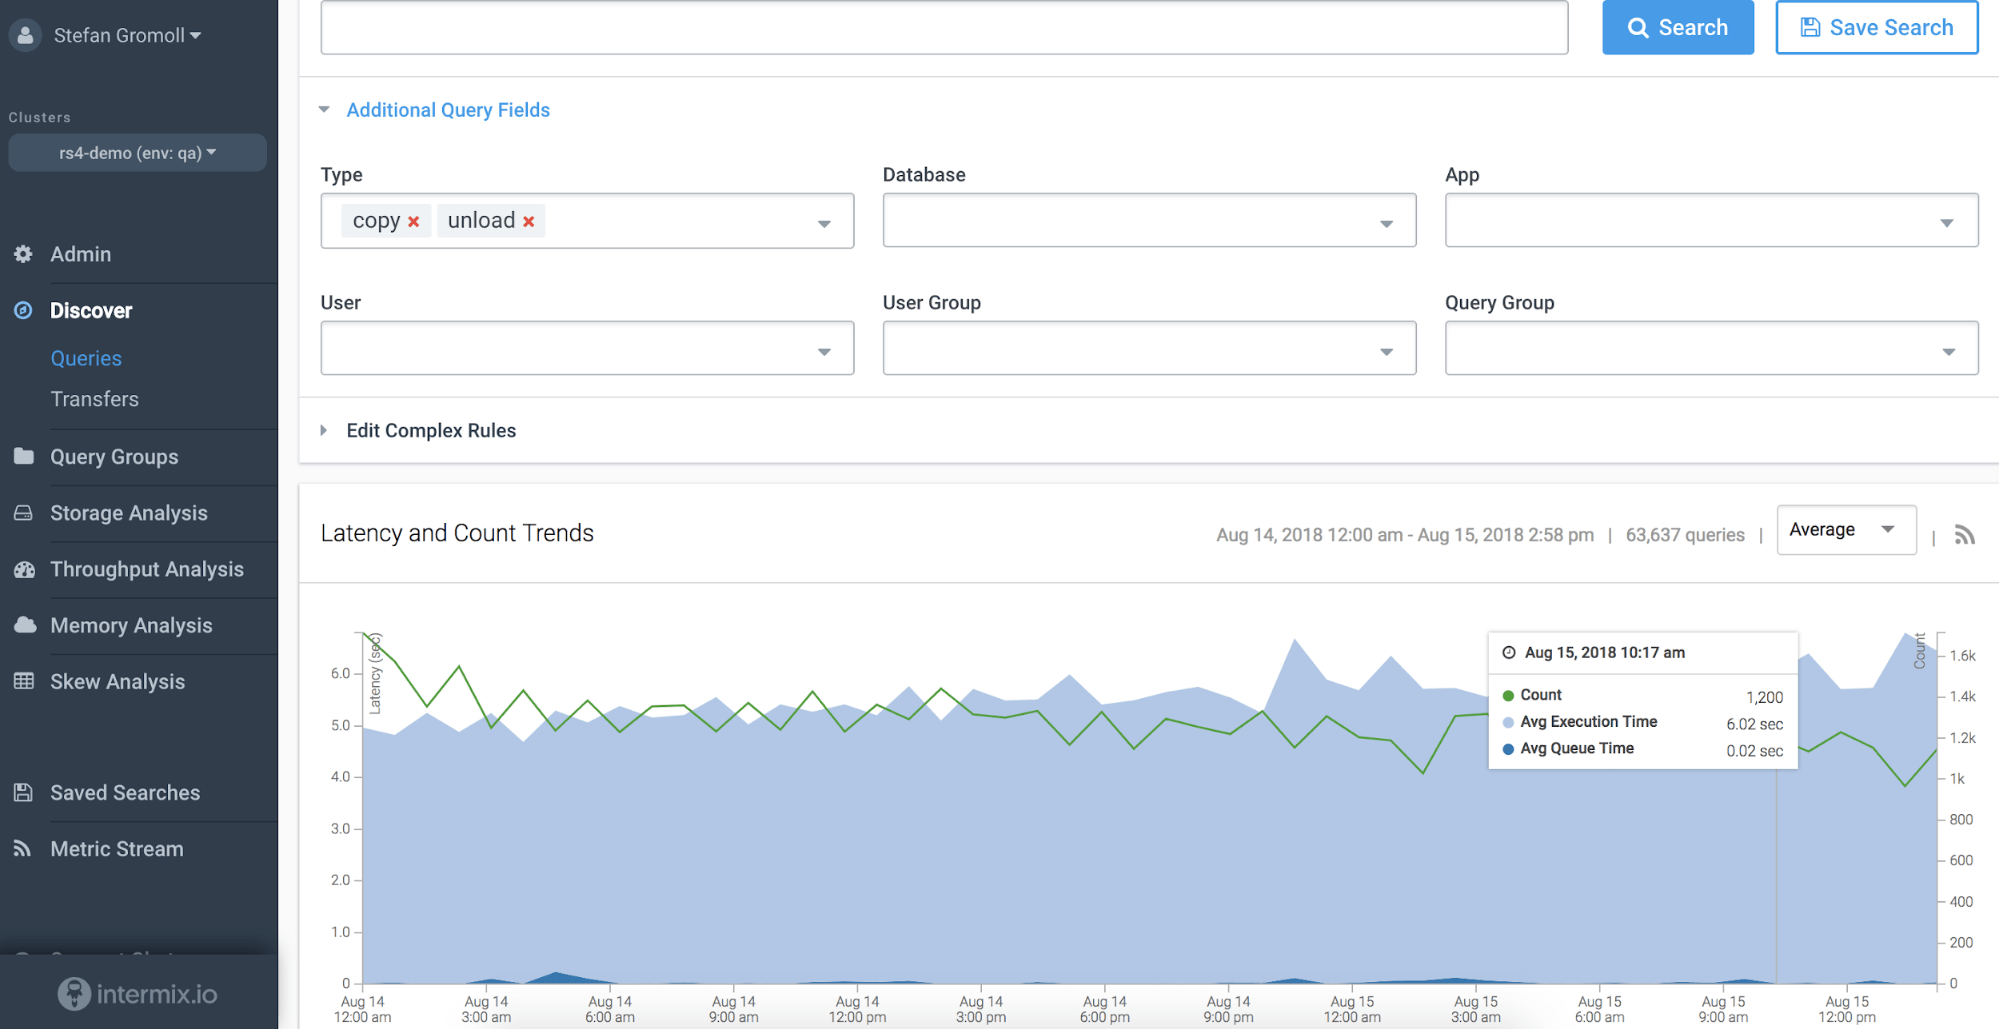 The Intermix.io copy and unload dashboard shows users whether reducing nodes will have an impact on Redshift workload